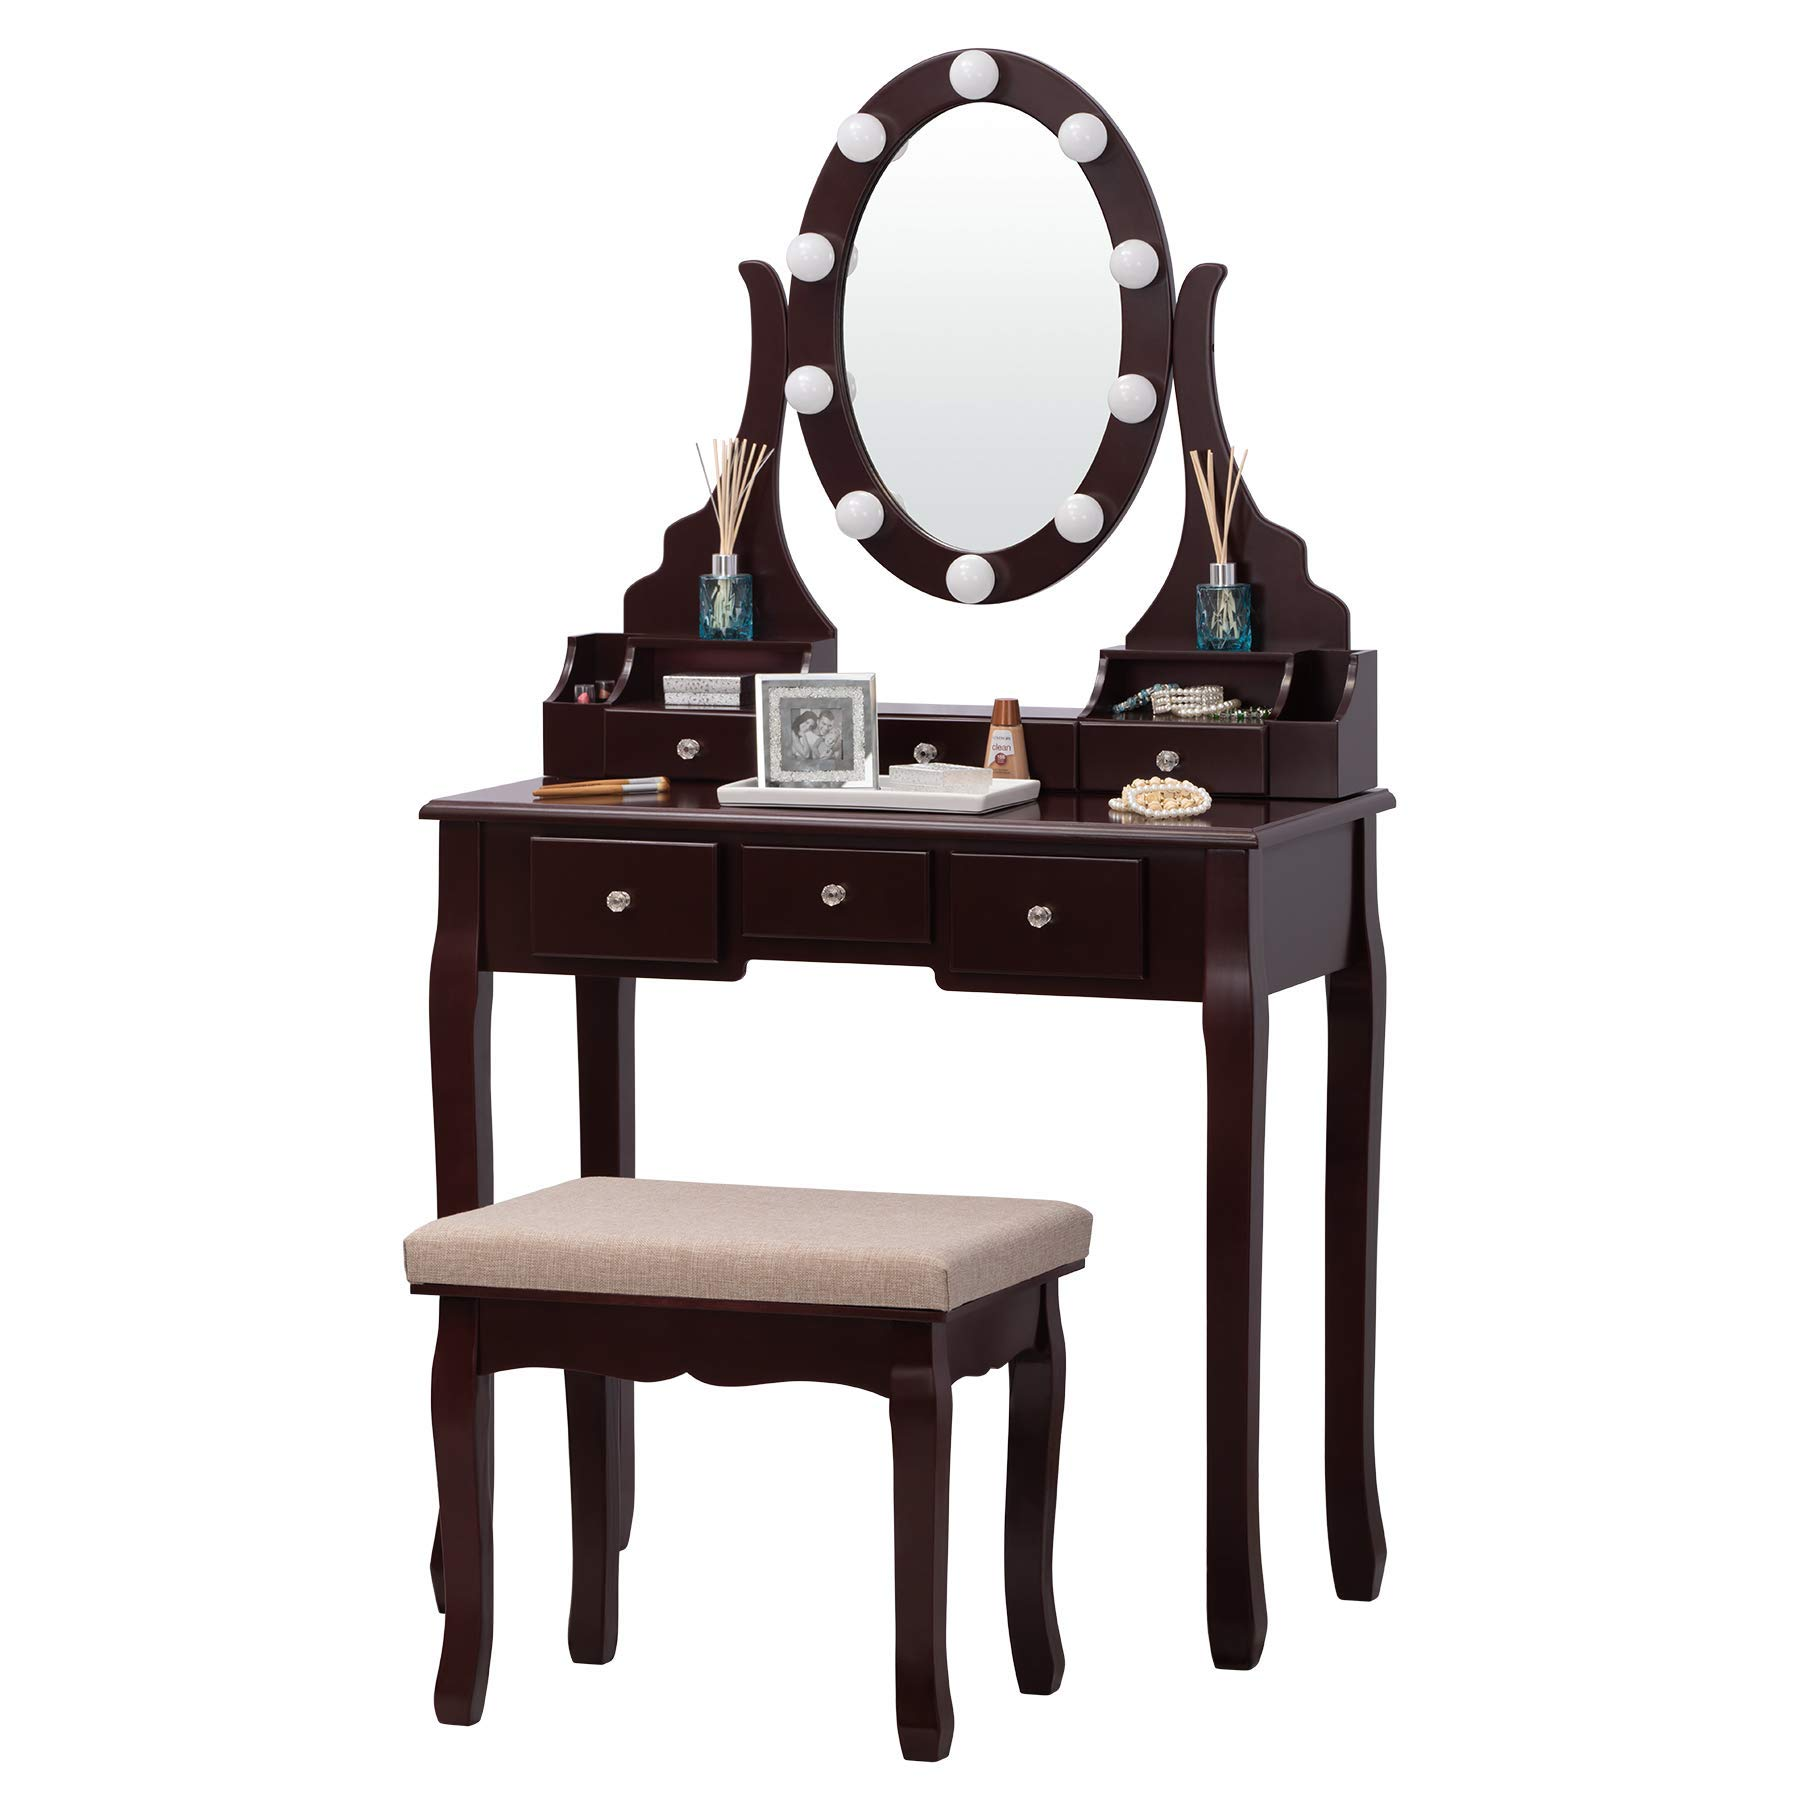 Fineboard FB-VT30-BN Vanity Table Set with LED Lights Mirror and Stool with 6 Drawers, Brown